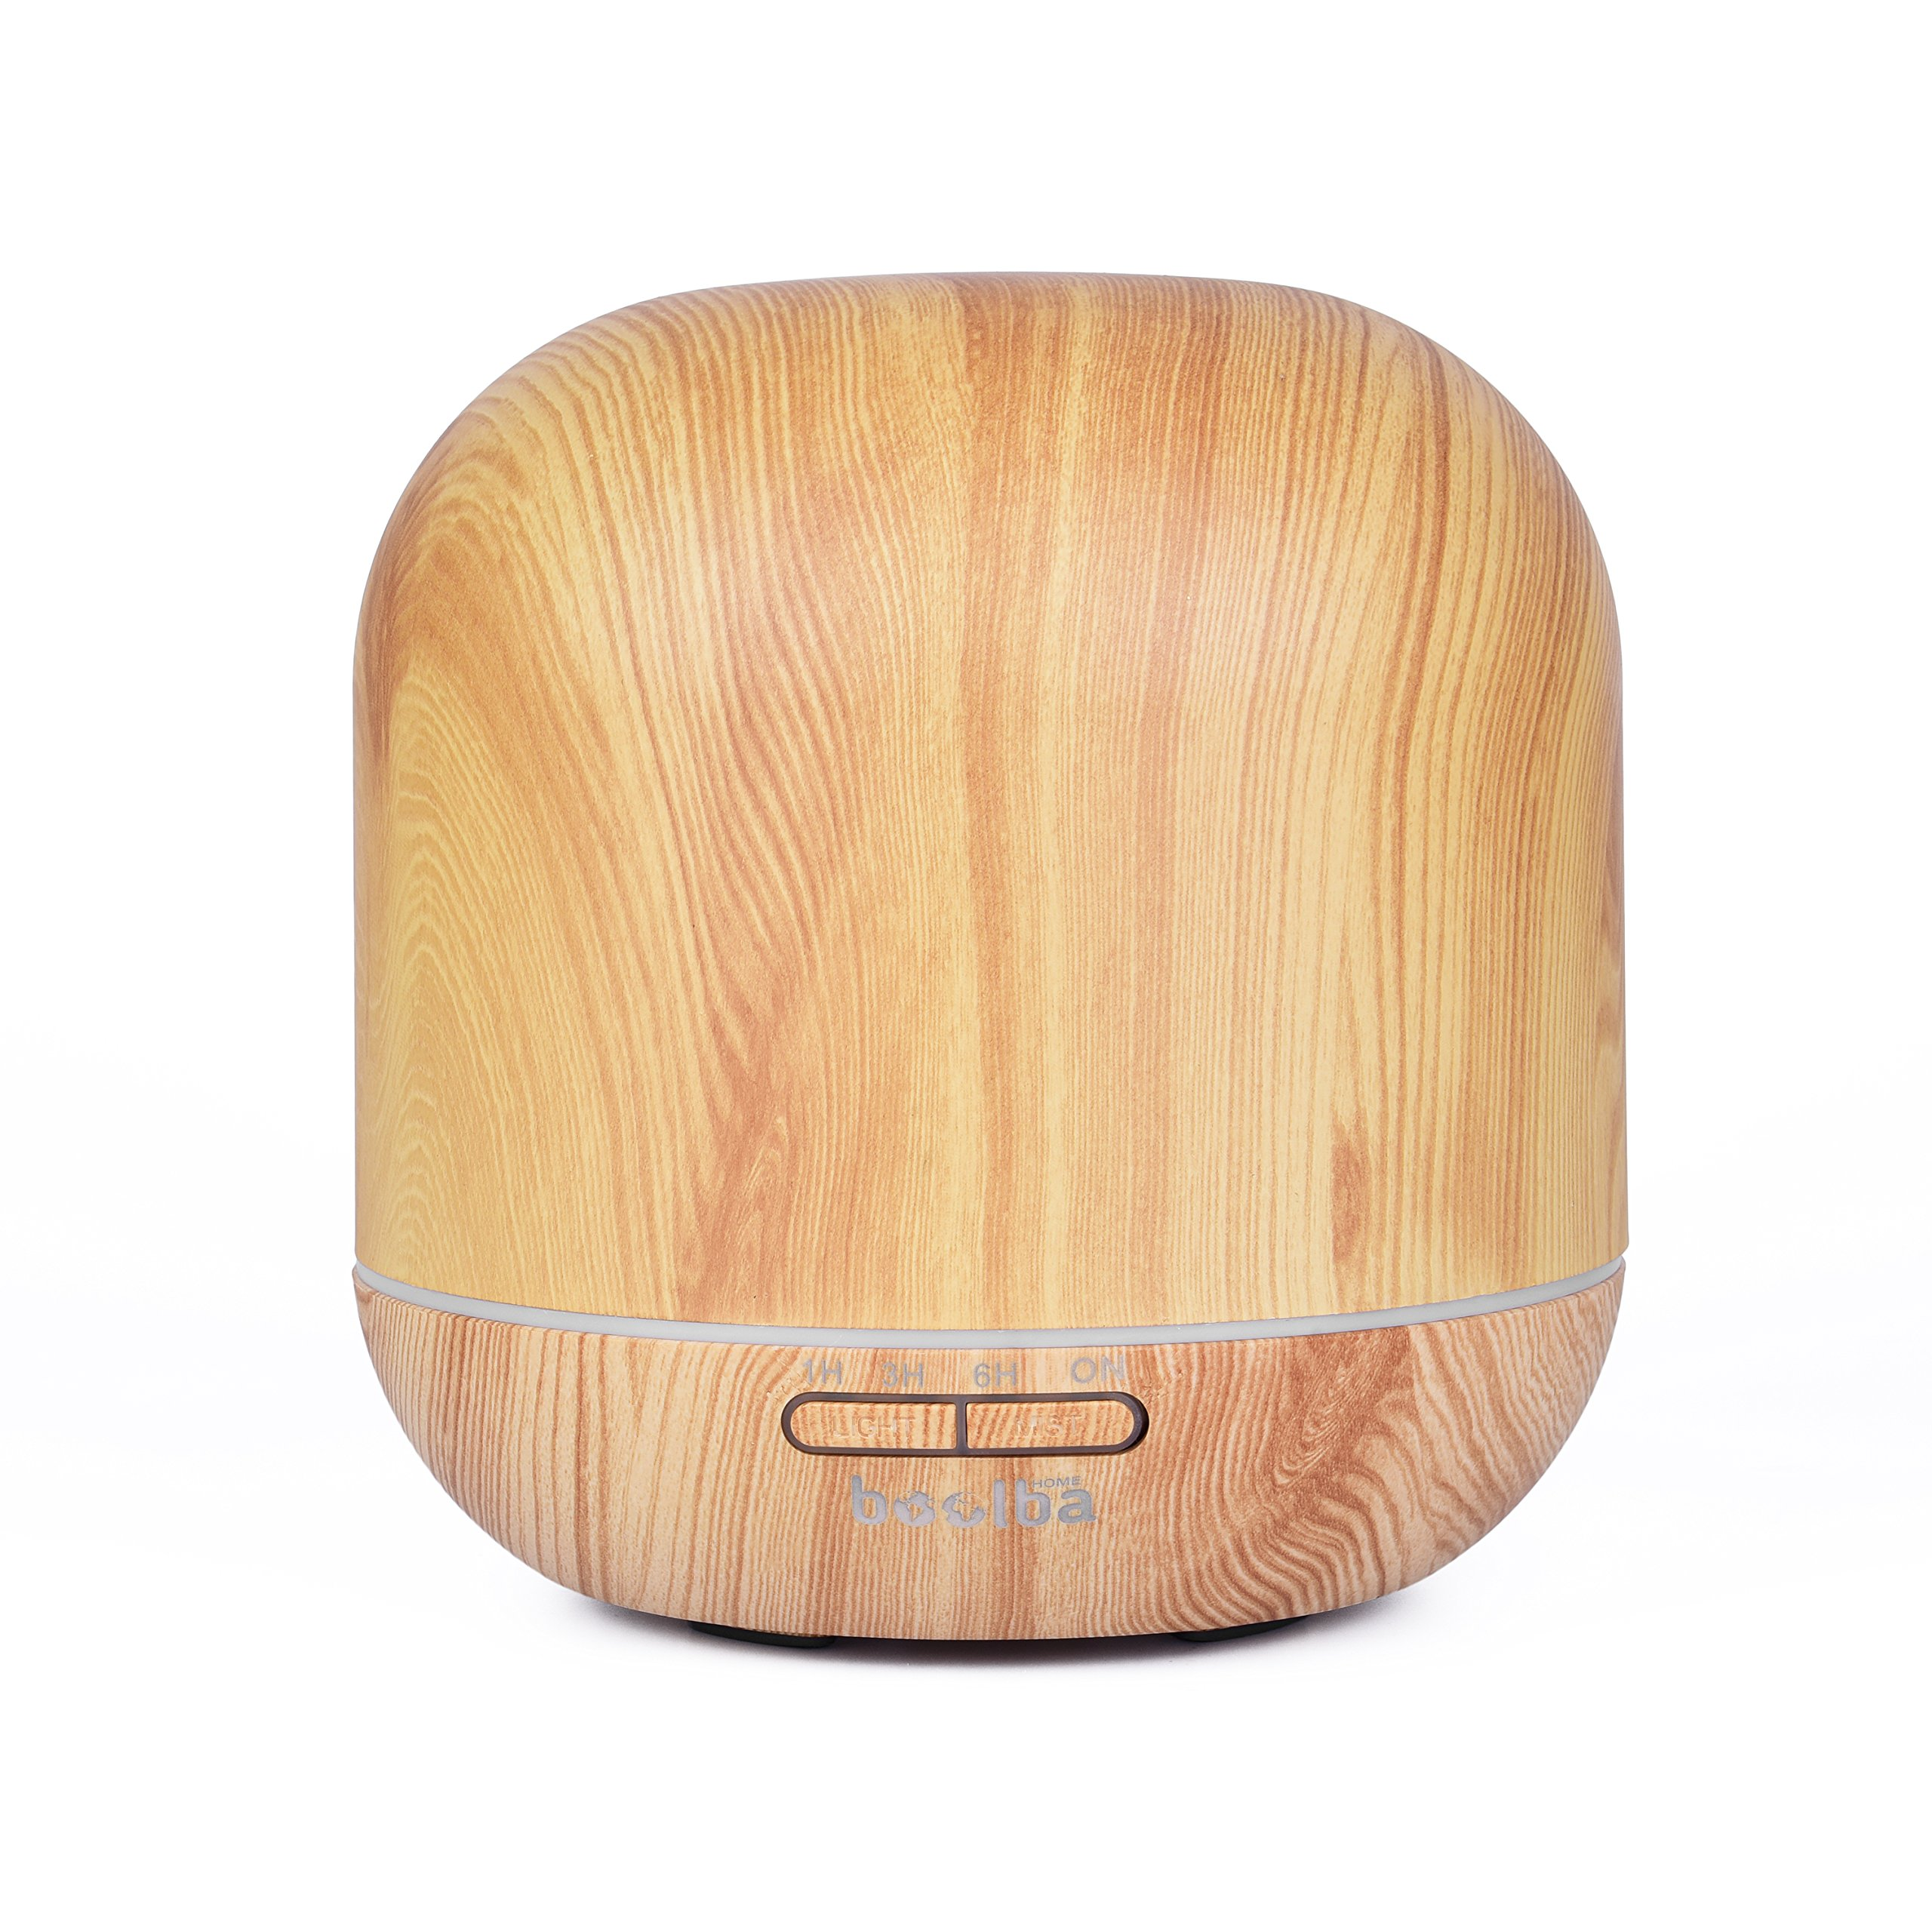 Essential Oil Diffuser Aroma Cool Mist Humidifier 300 ml Spa Experience at Home or Office Good for Travel